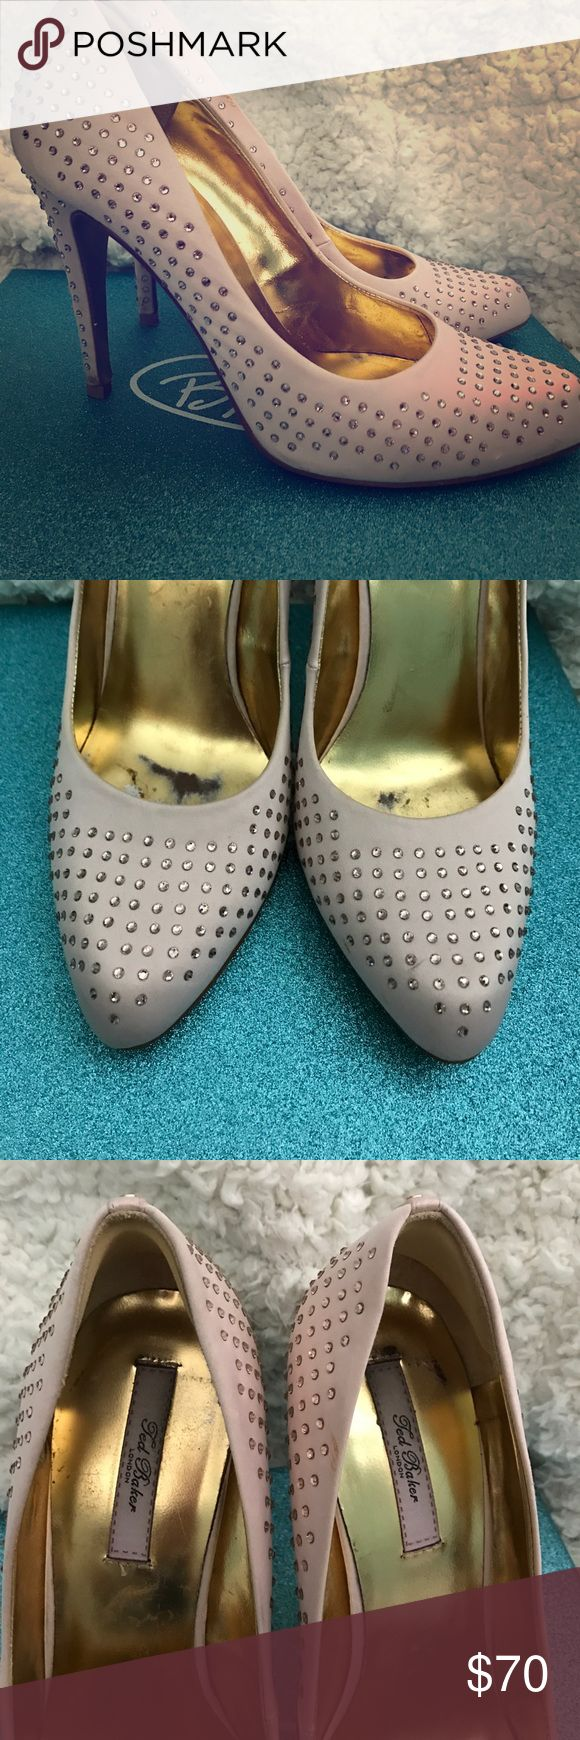 Ted Baker pink heels! Received many compliments when wearing these beautiful heels. Best offer. Baker by Ted Baker Shoes Heels